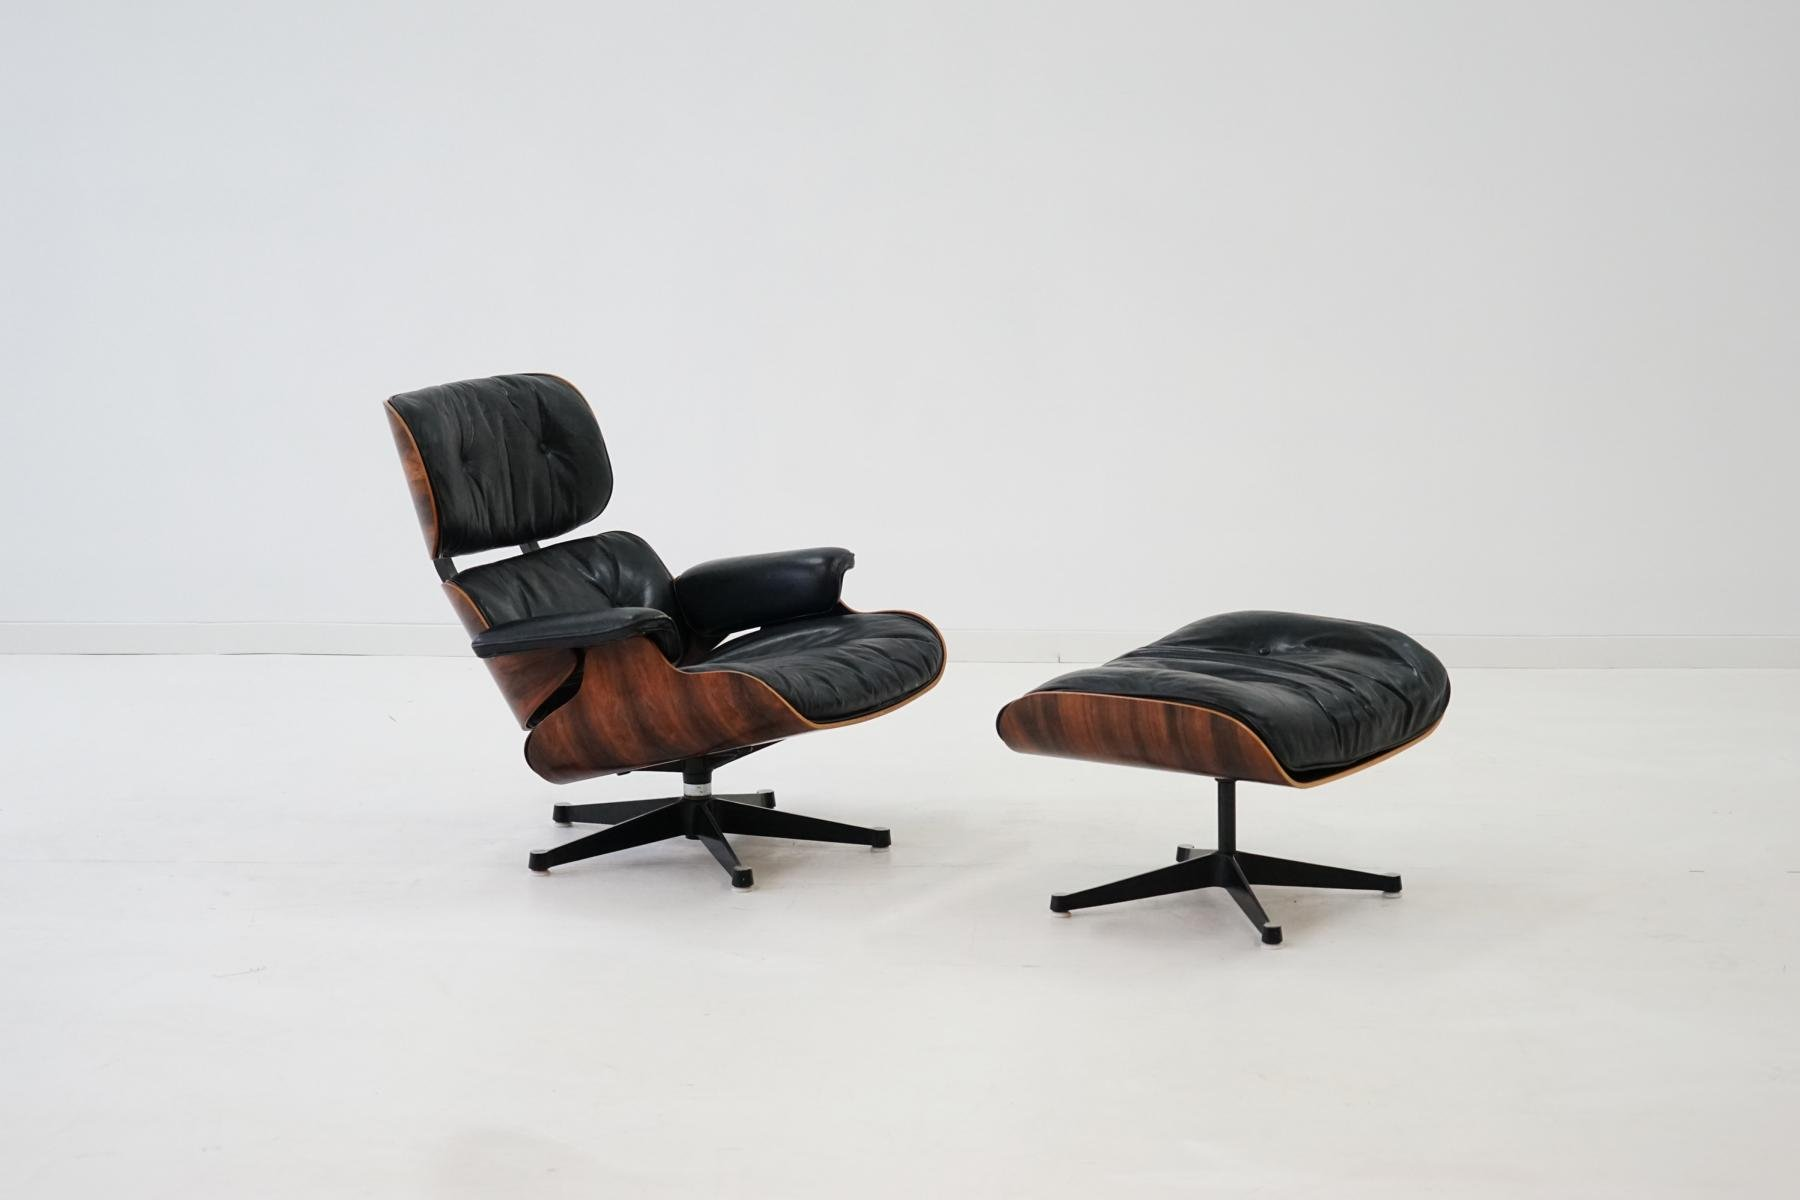 sessel und ottomane von charles und ray eames f r herman. Black Bedroom Furniture Sets. Home Design Ideas